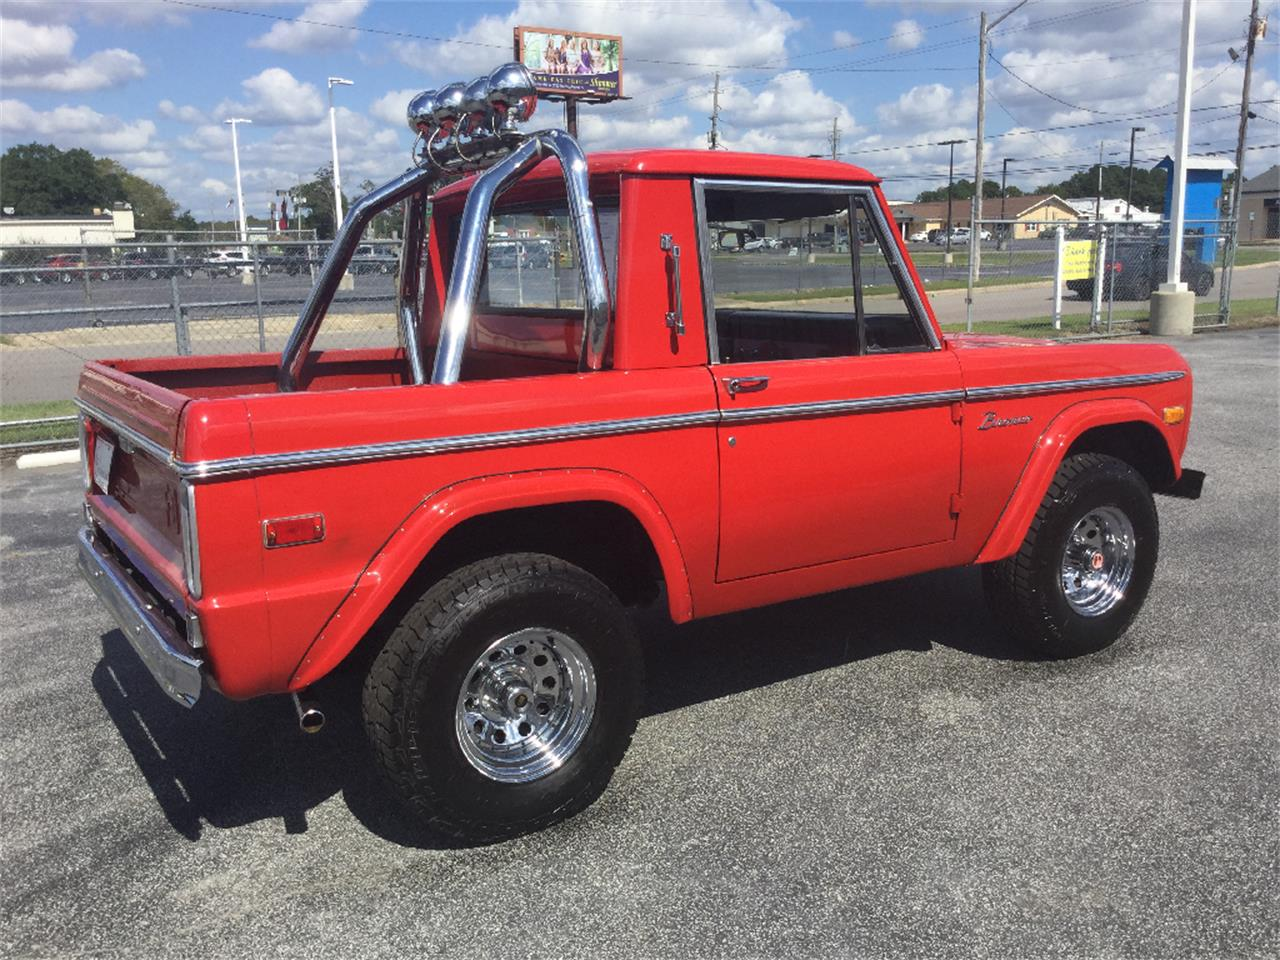 Large Picture of 1974 Ford Bronco located in Greenville North Carolina - $39,999.00 - L5TD